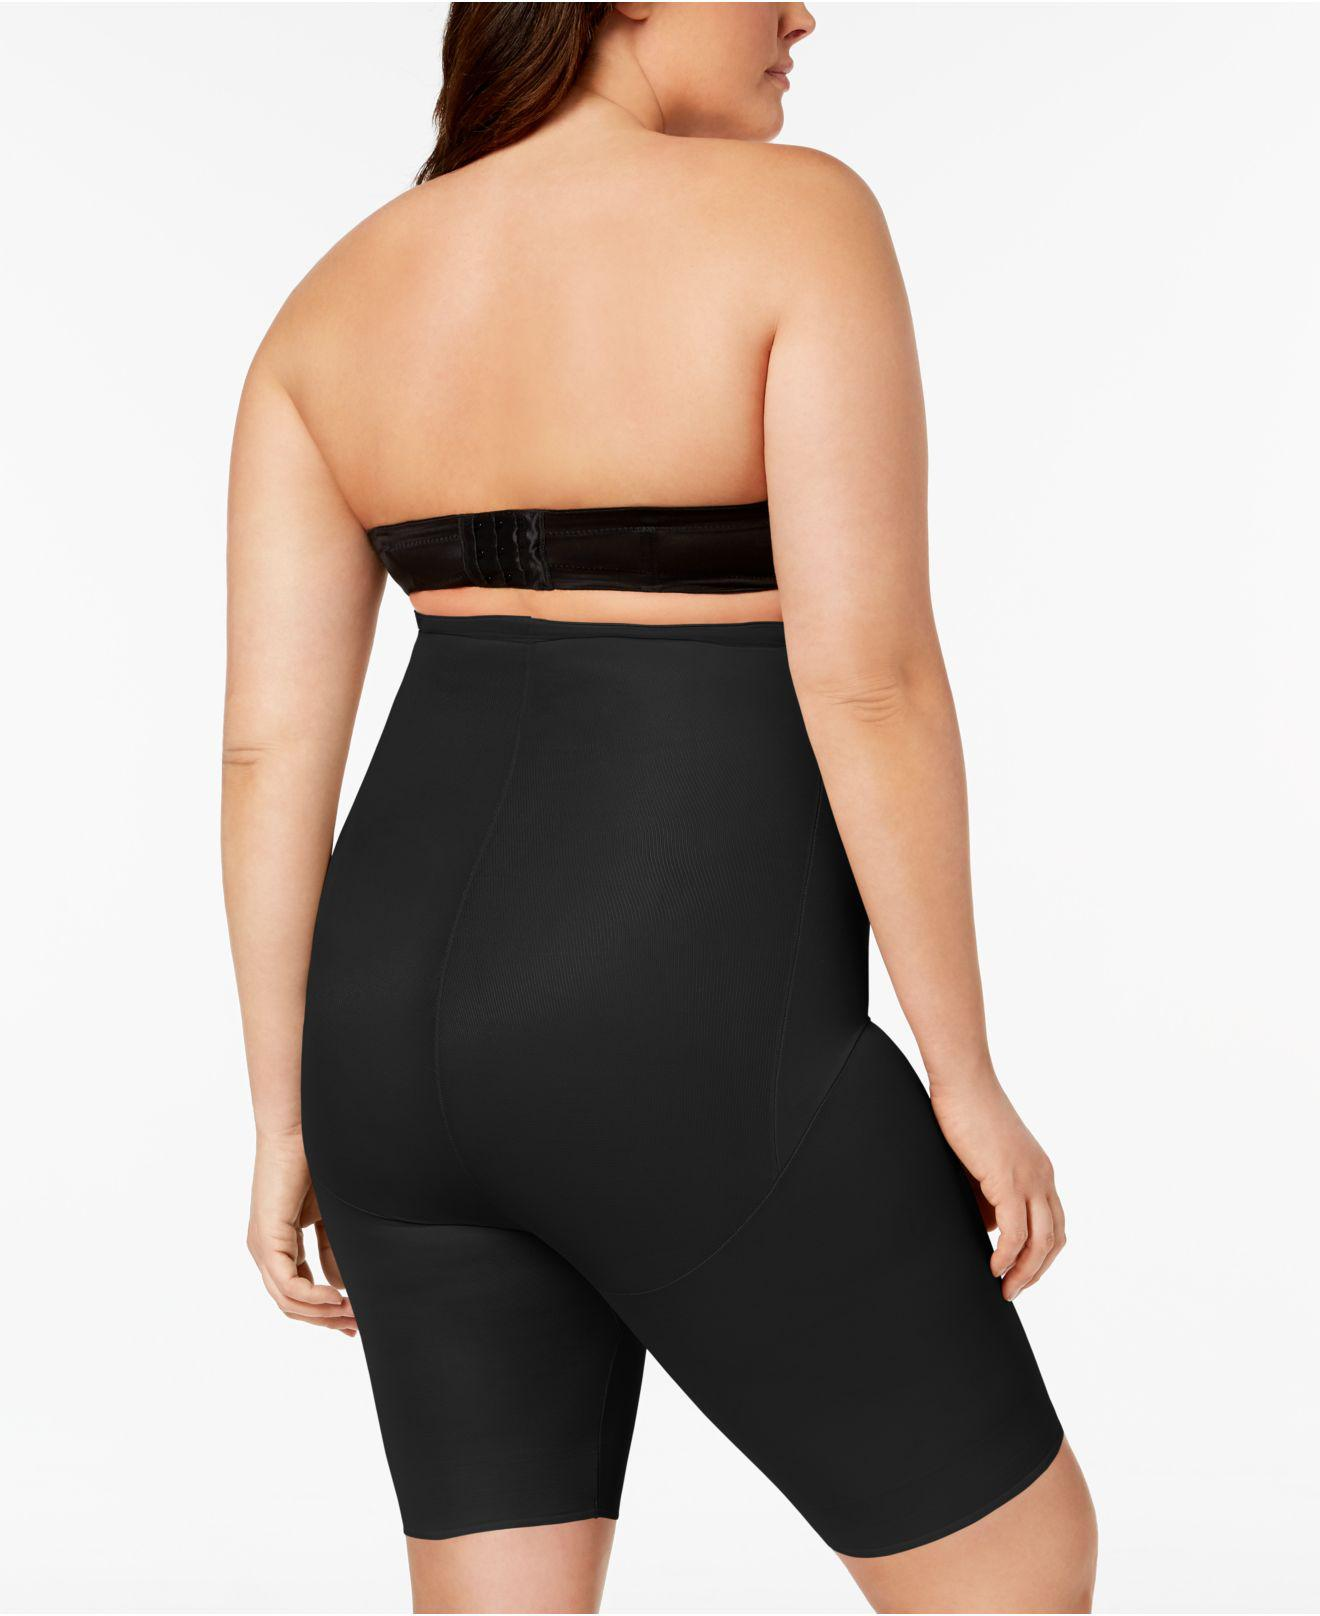 3ad4c4ca03ae Miraclesuit - Natural Extra Firm Control Shape With An Edge High Waist  Thigh Slimmer 2709 -. View fullscreen